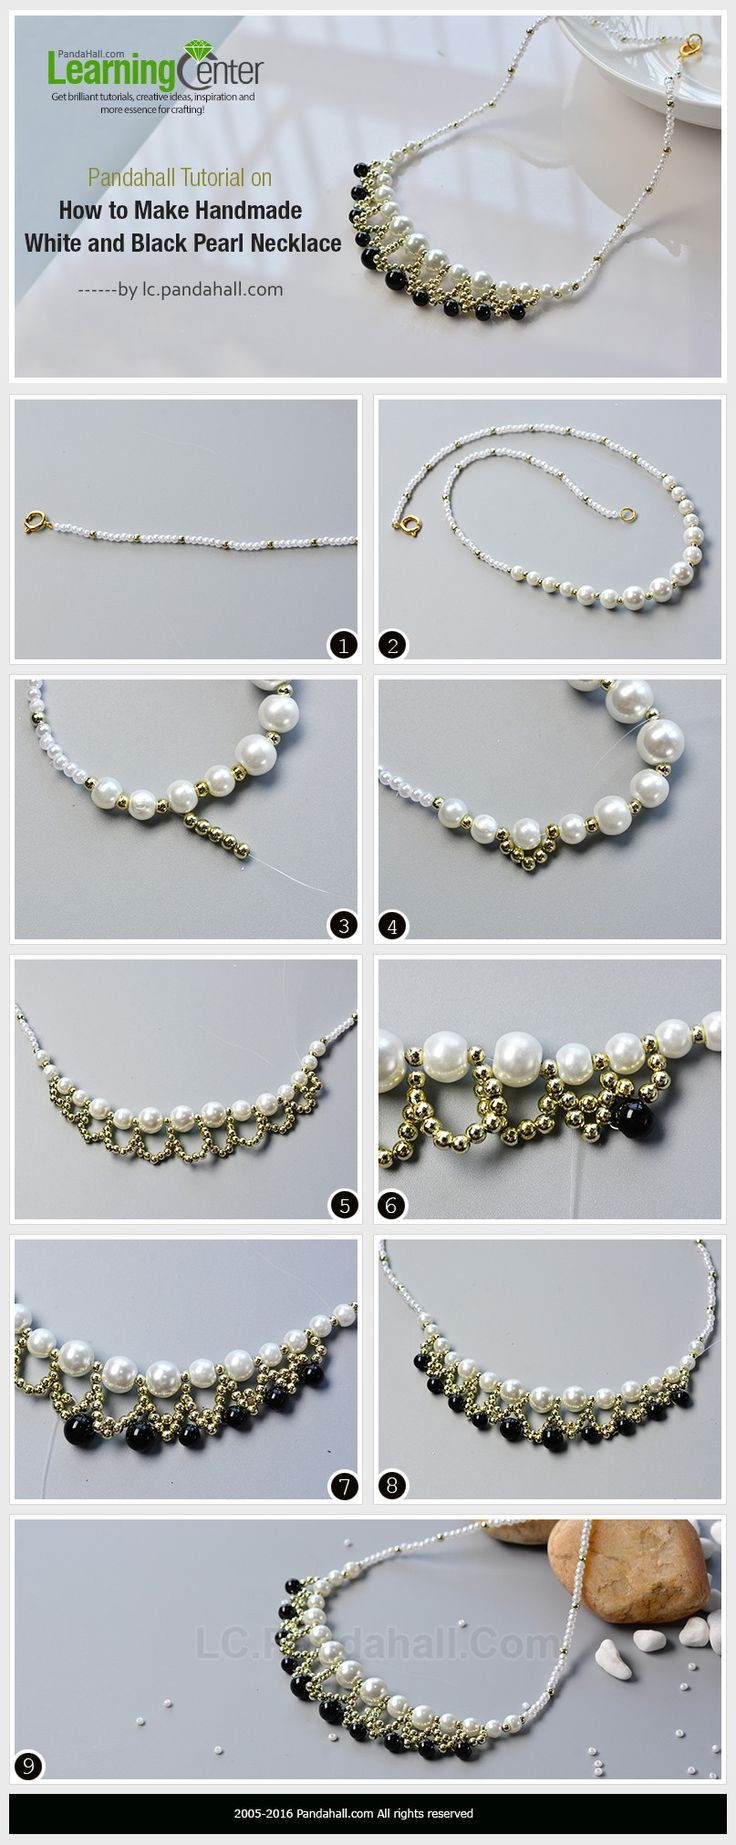 Best Seed Bead Jewelry  2017  Pandahall Tutorial on How to Make Handmade White and Black Pearl Necklace from L